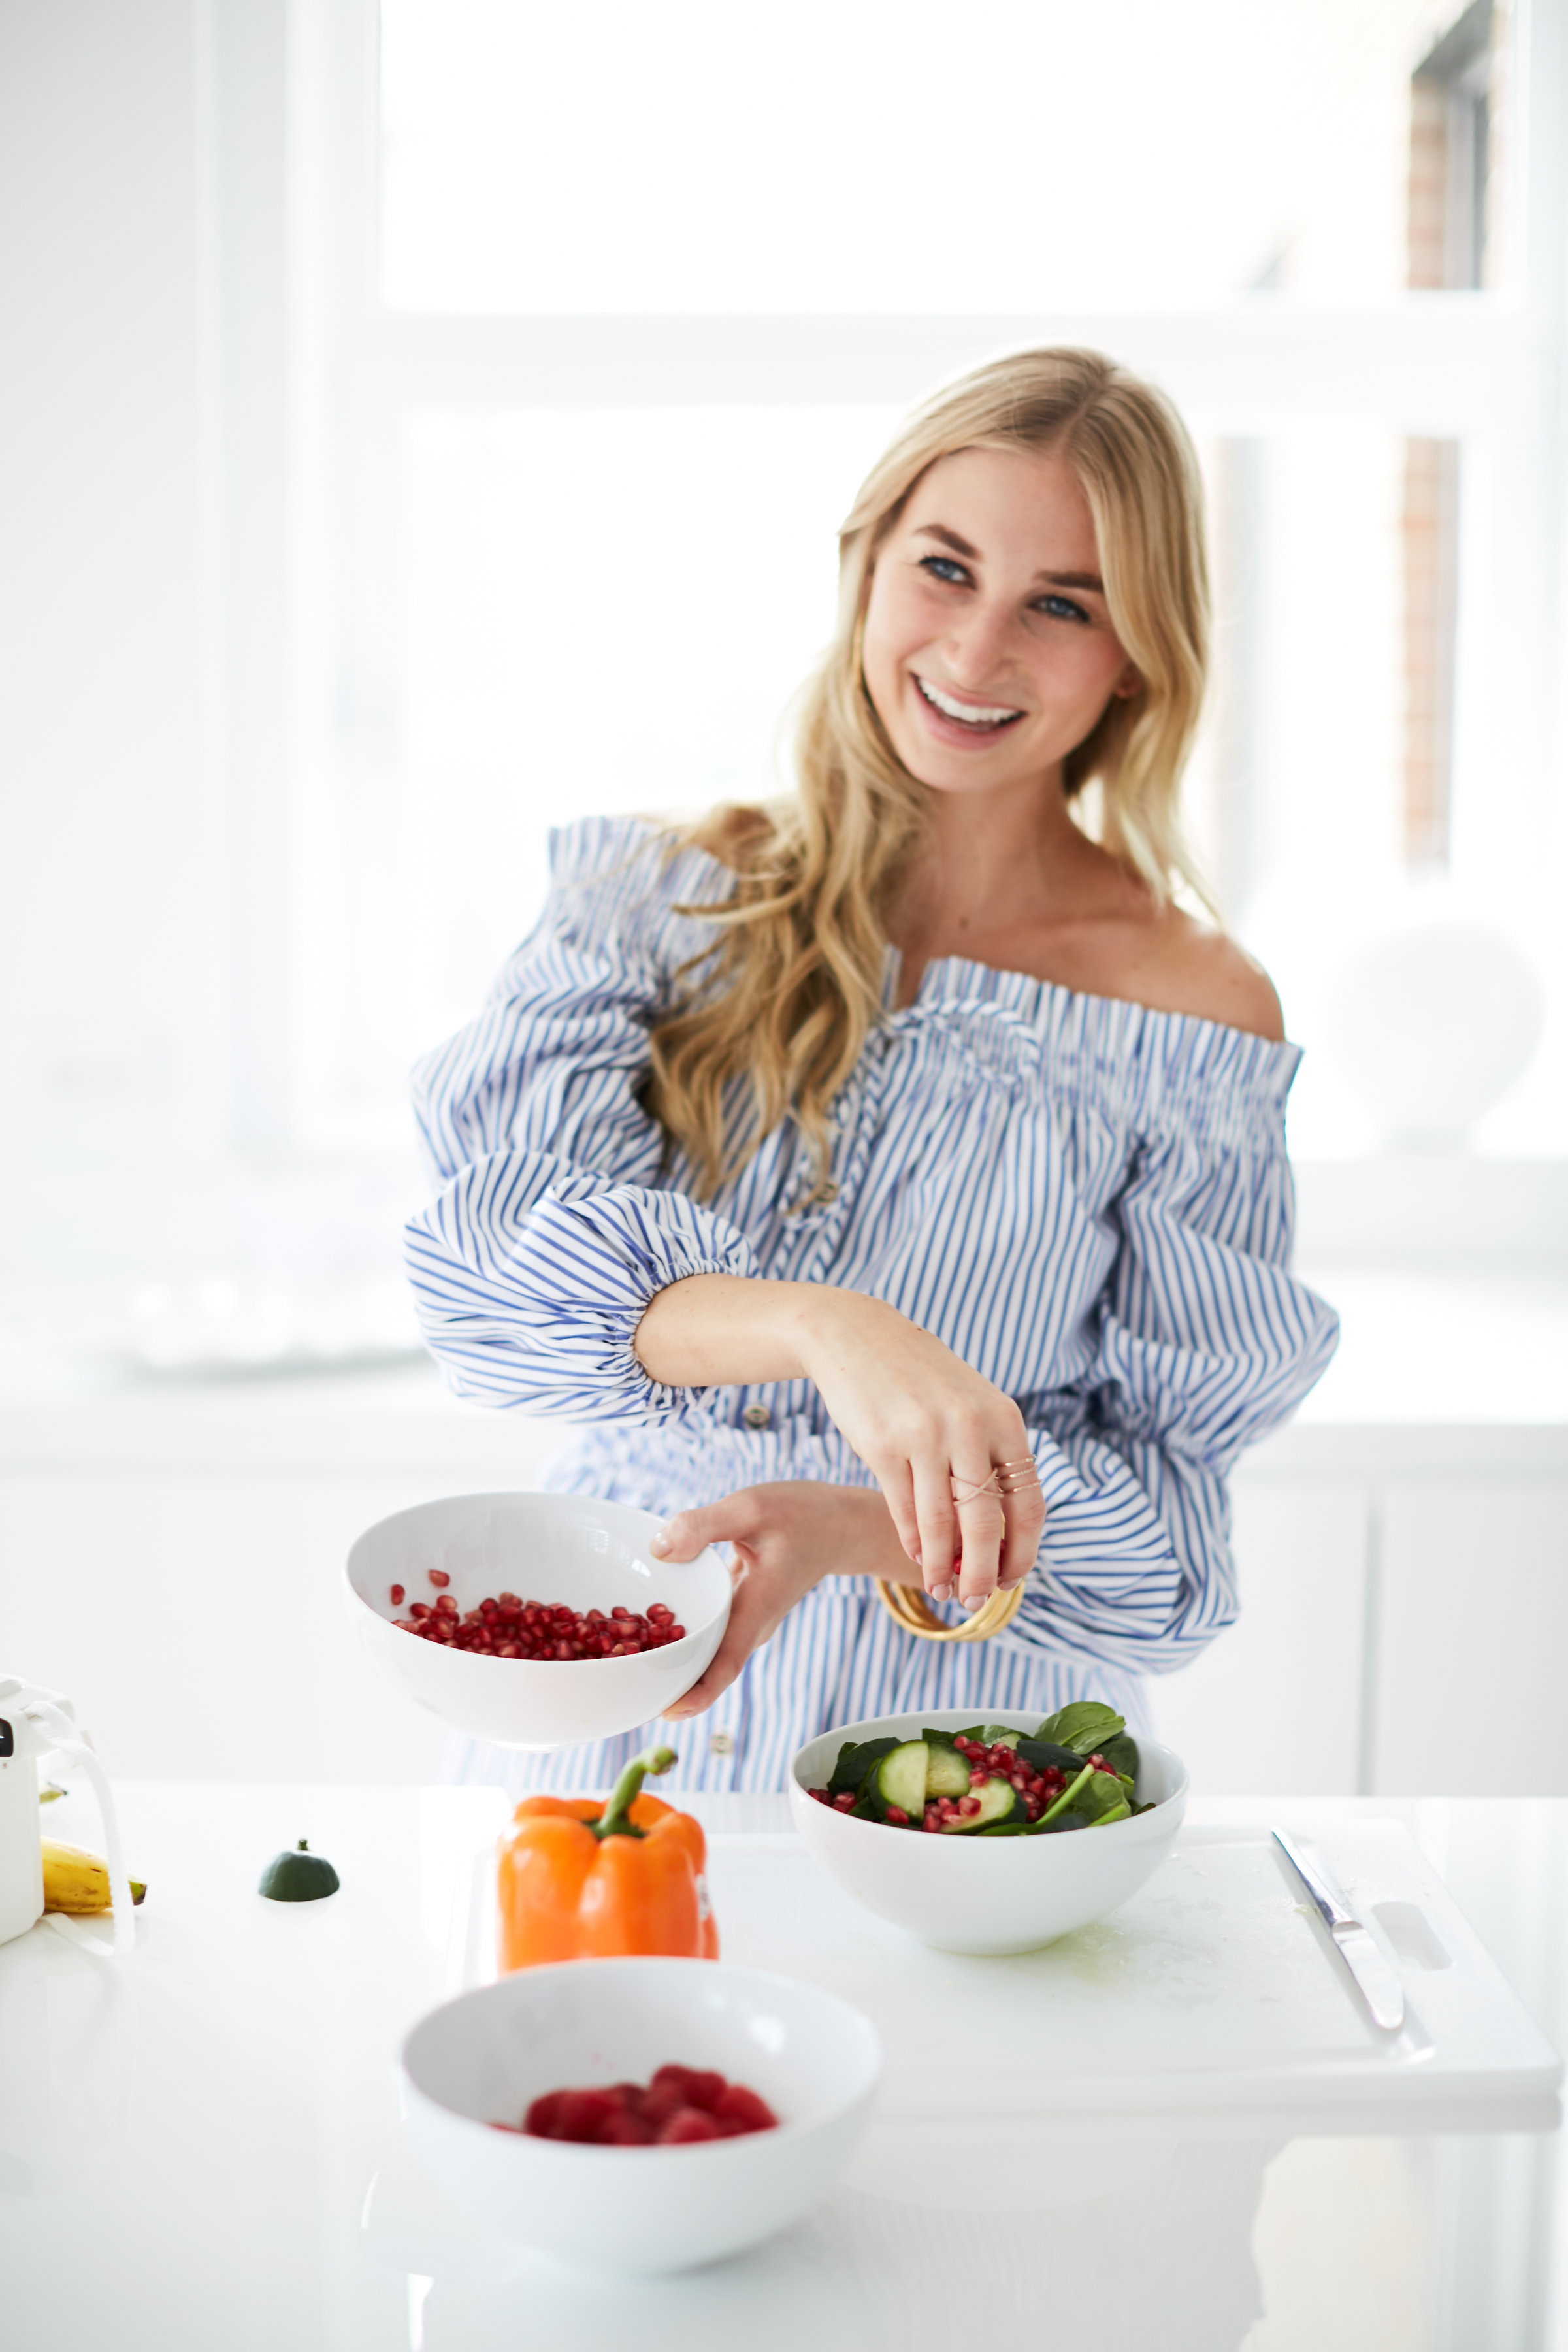 blonde woman in blue shirt smiling preparing salad